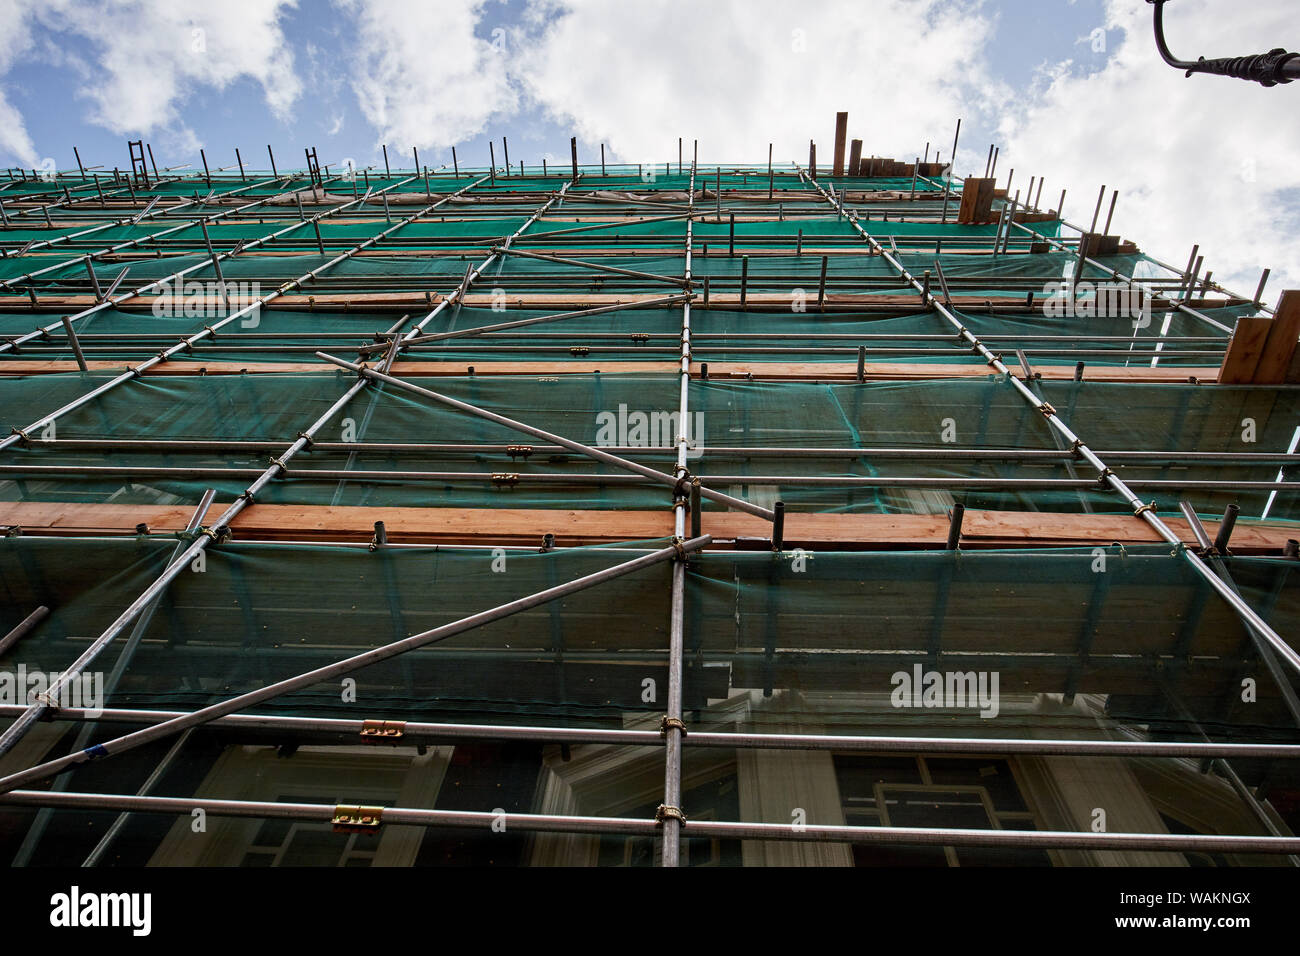 Professional scaffolding on the side of a building under renovation. Stock Photo